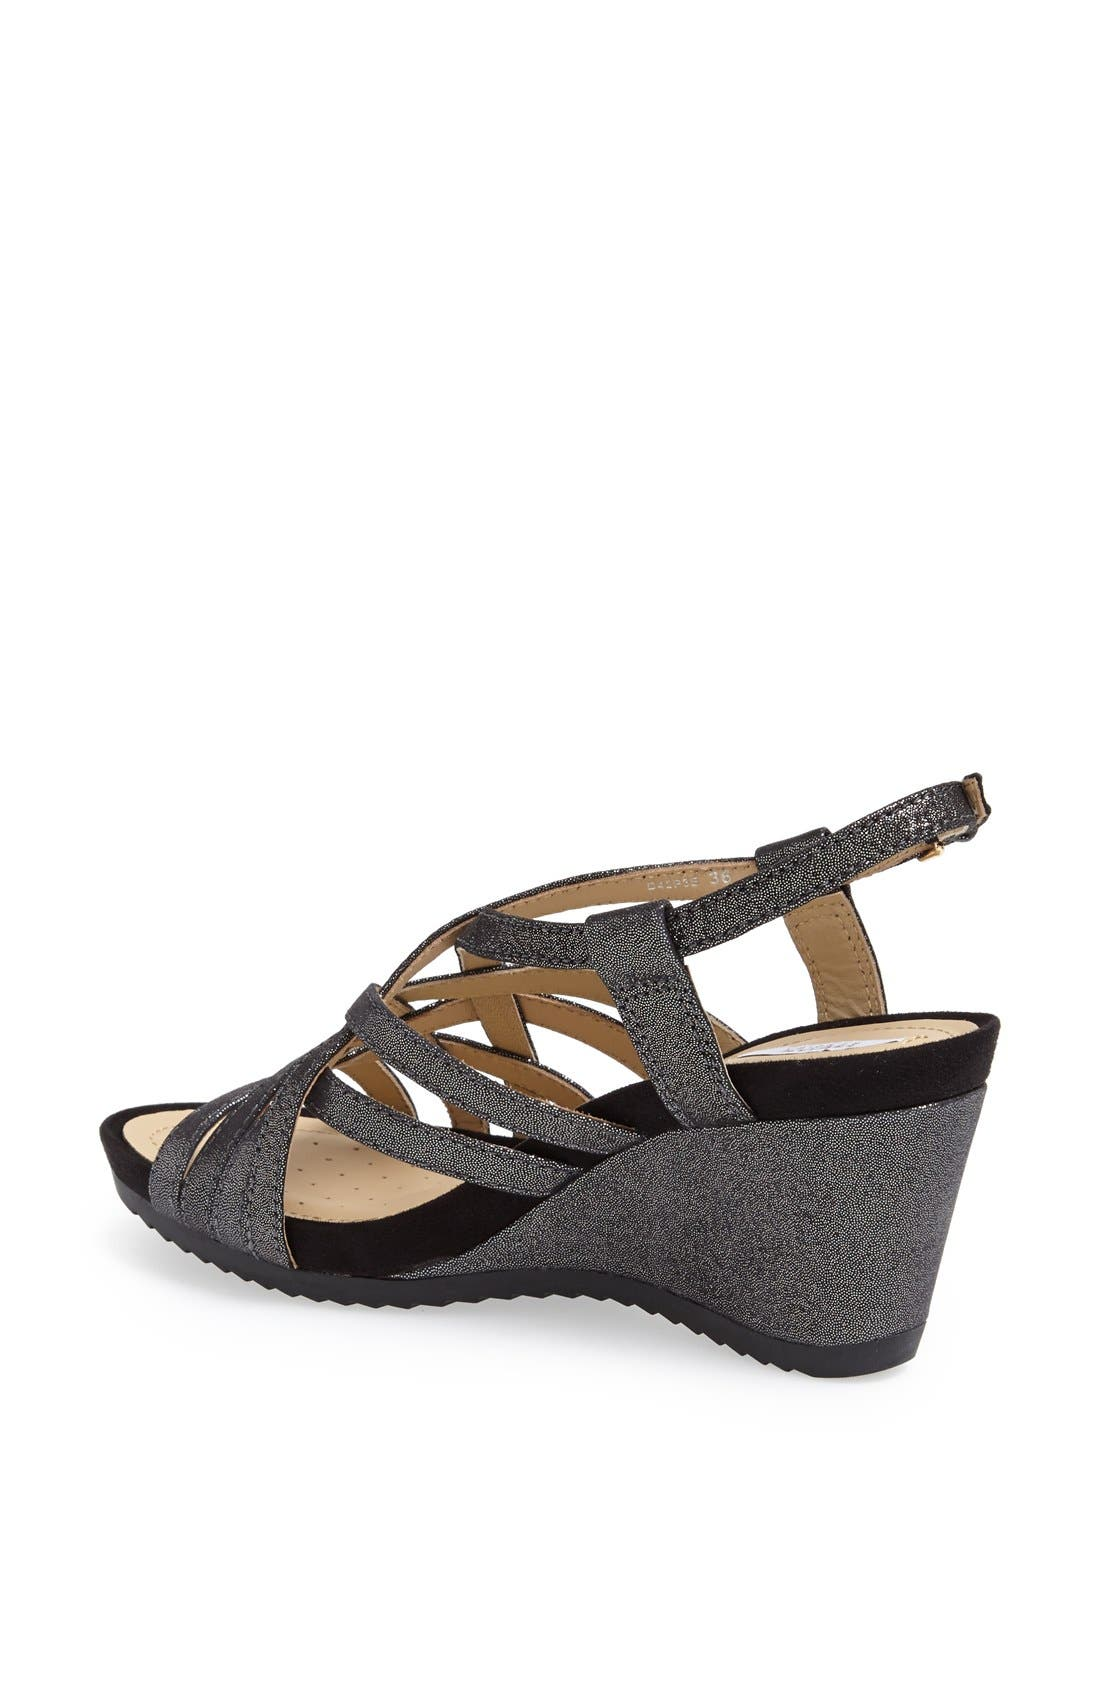 Alternate Image 2  - Geox 'Roxy' Metallic Leather Sandal (Women)